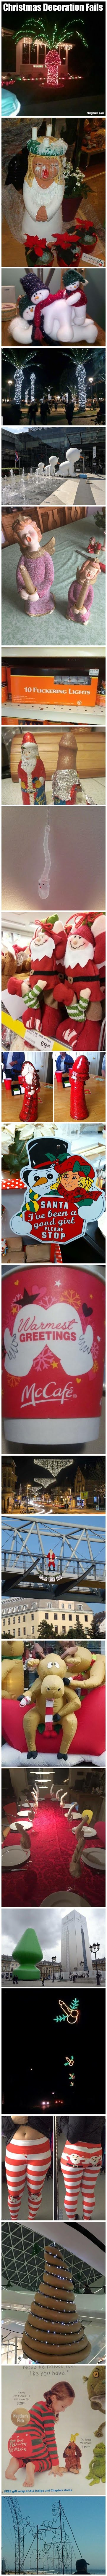 Funny Christmas Decoration Fails Picture Collection